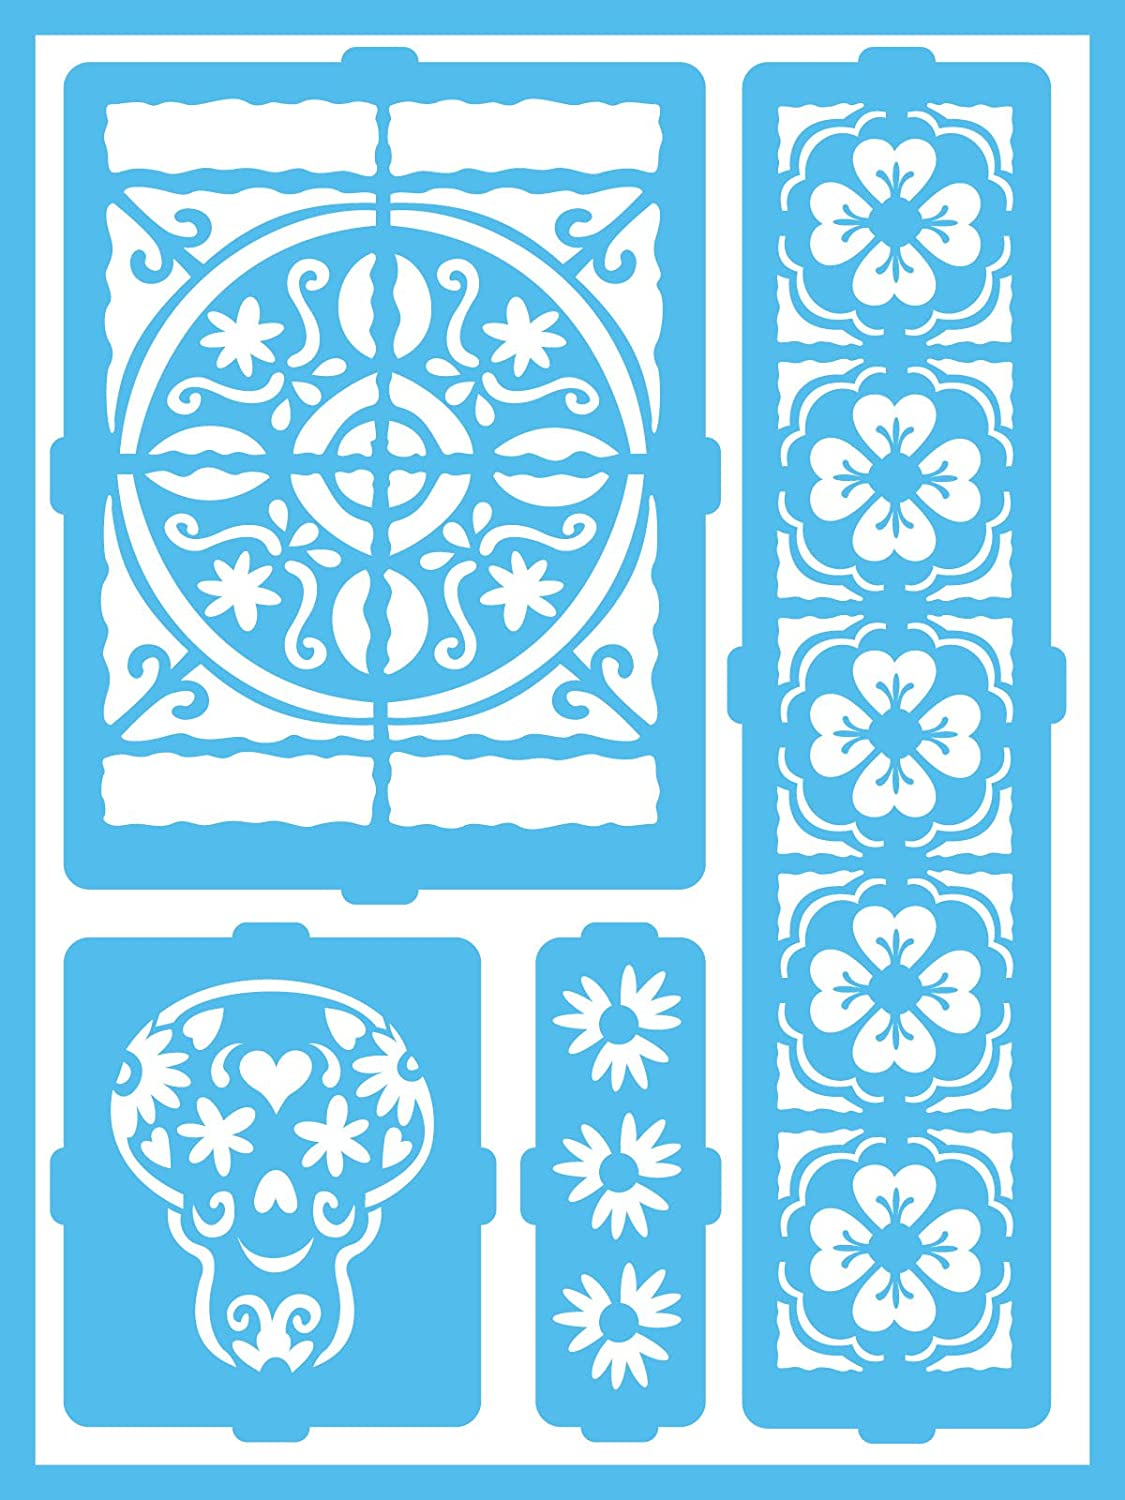 DecoArt Patio Paint Self-Adhesive Stencils Latin Inspiration 6 by 8-Inch